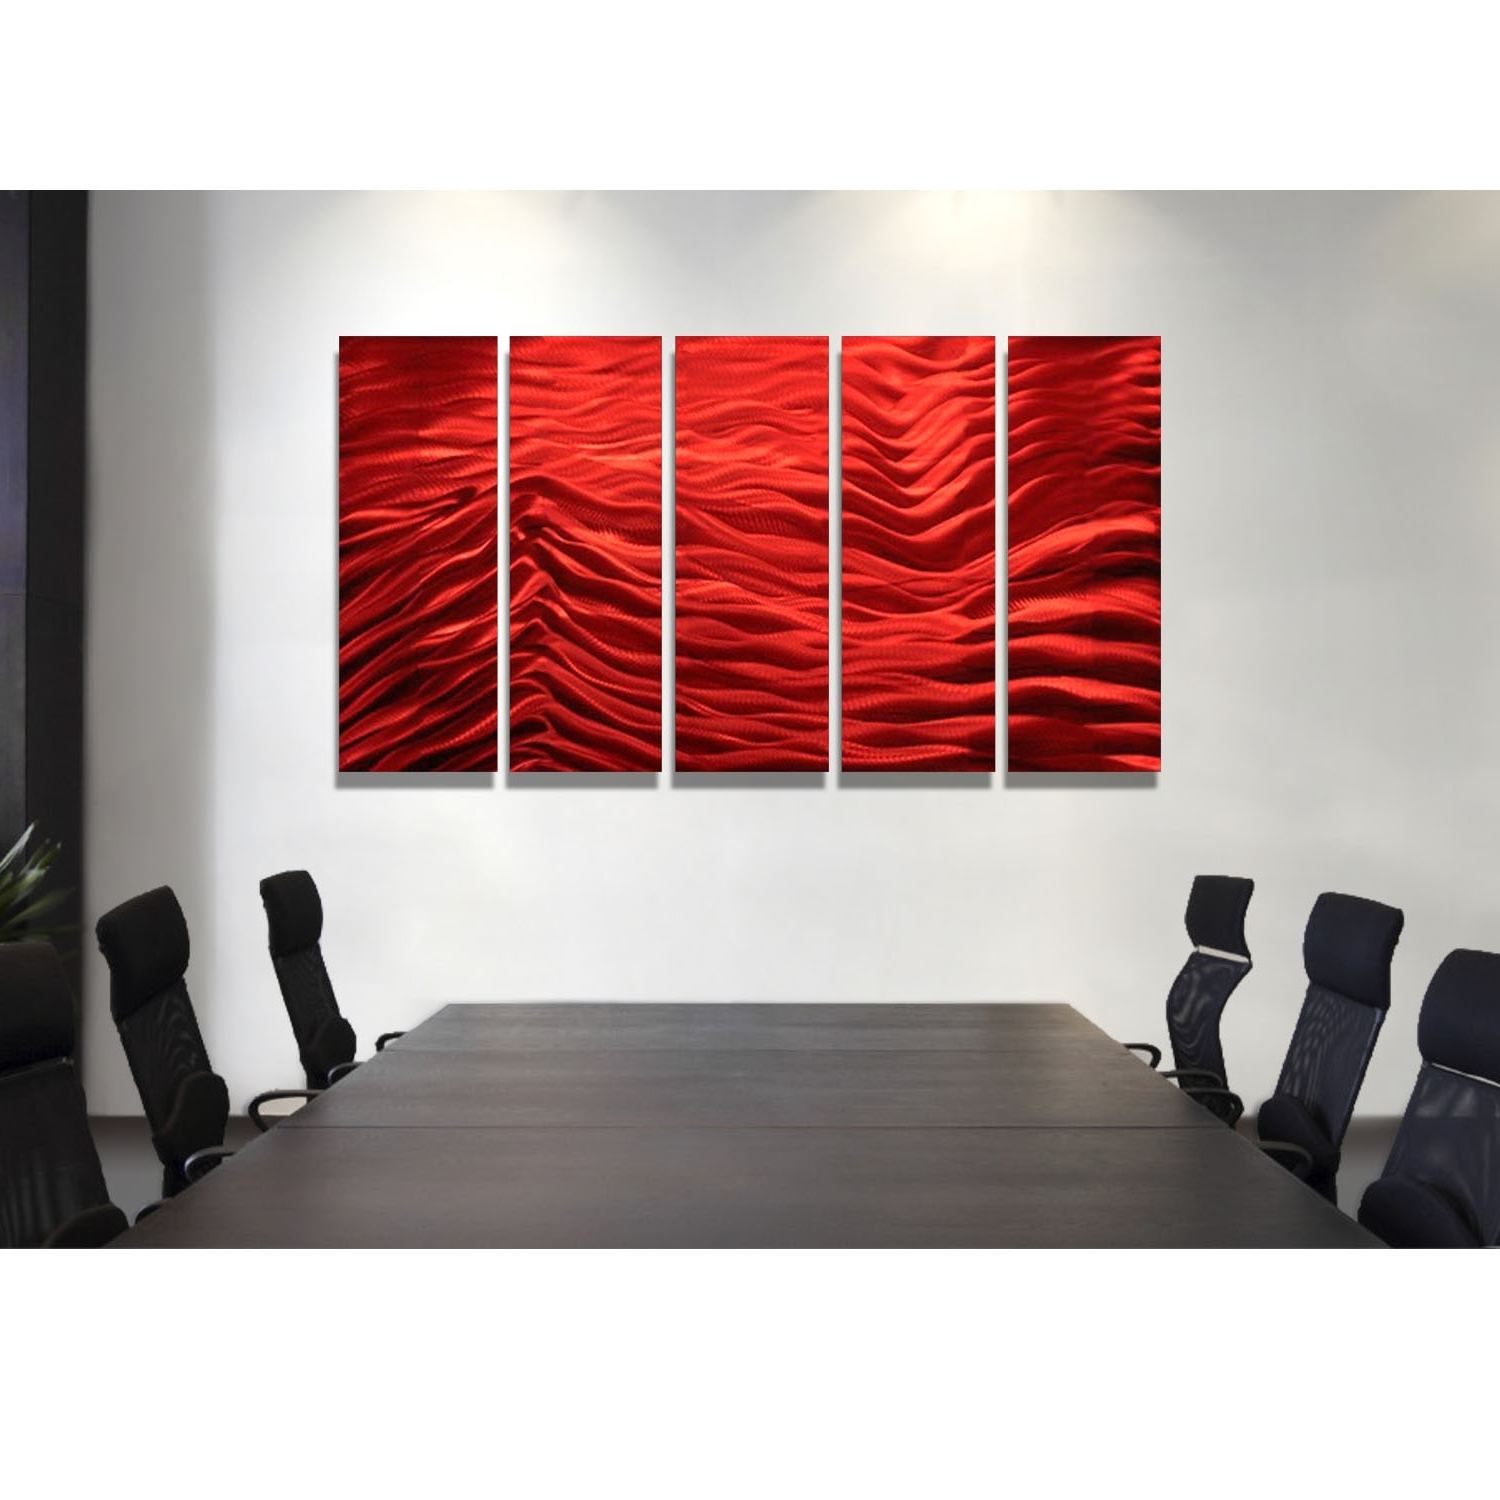 Well Liked 5 Panel Wall Art Pertaining To Red Inertia – Red Metal Wall Art – 5 Panel Wall Décorjon Allen (Gallery 3 of 20)